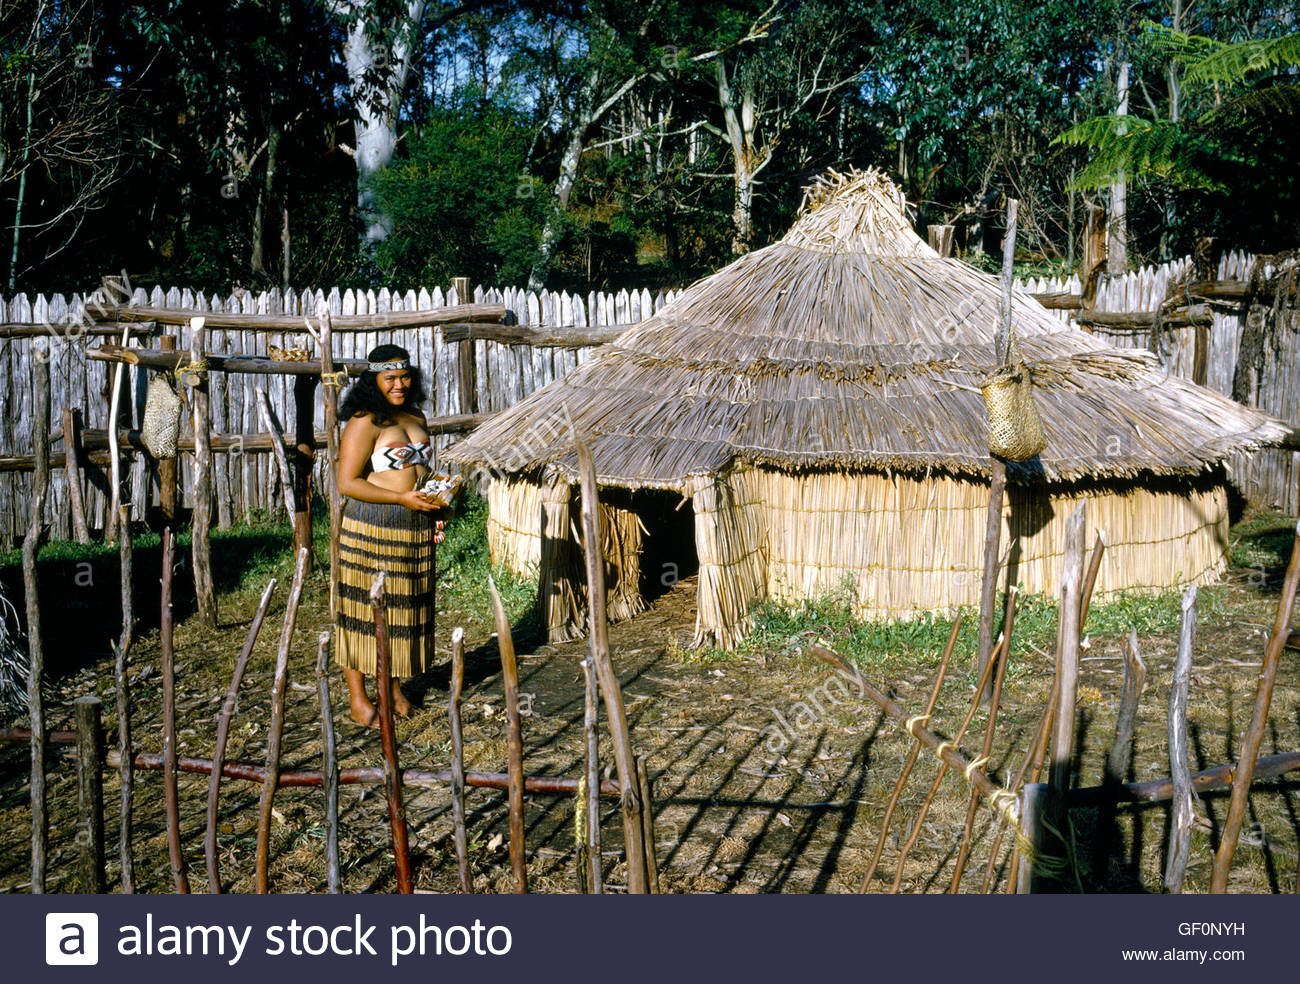 Maori Village: New Zealand Keri Keri Maori Village Stock Photo, Royalty